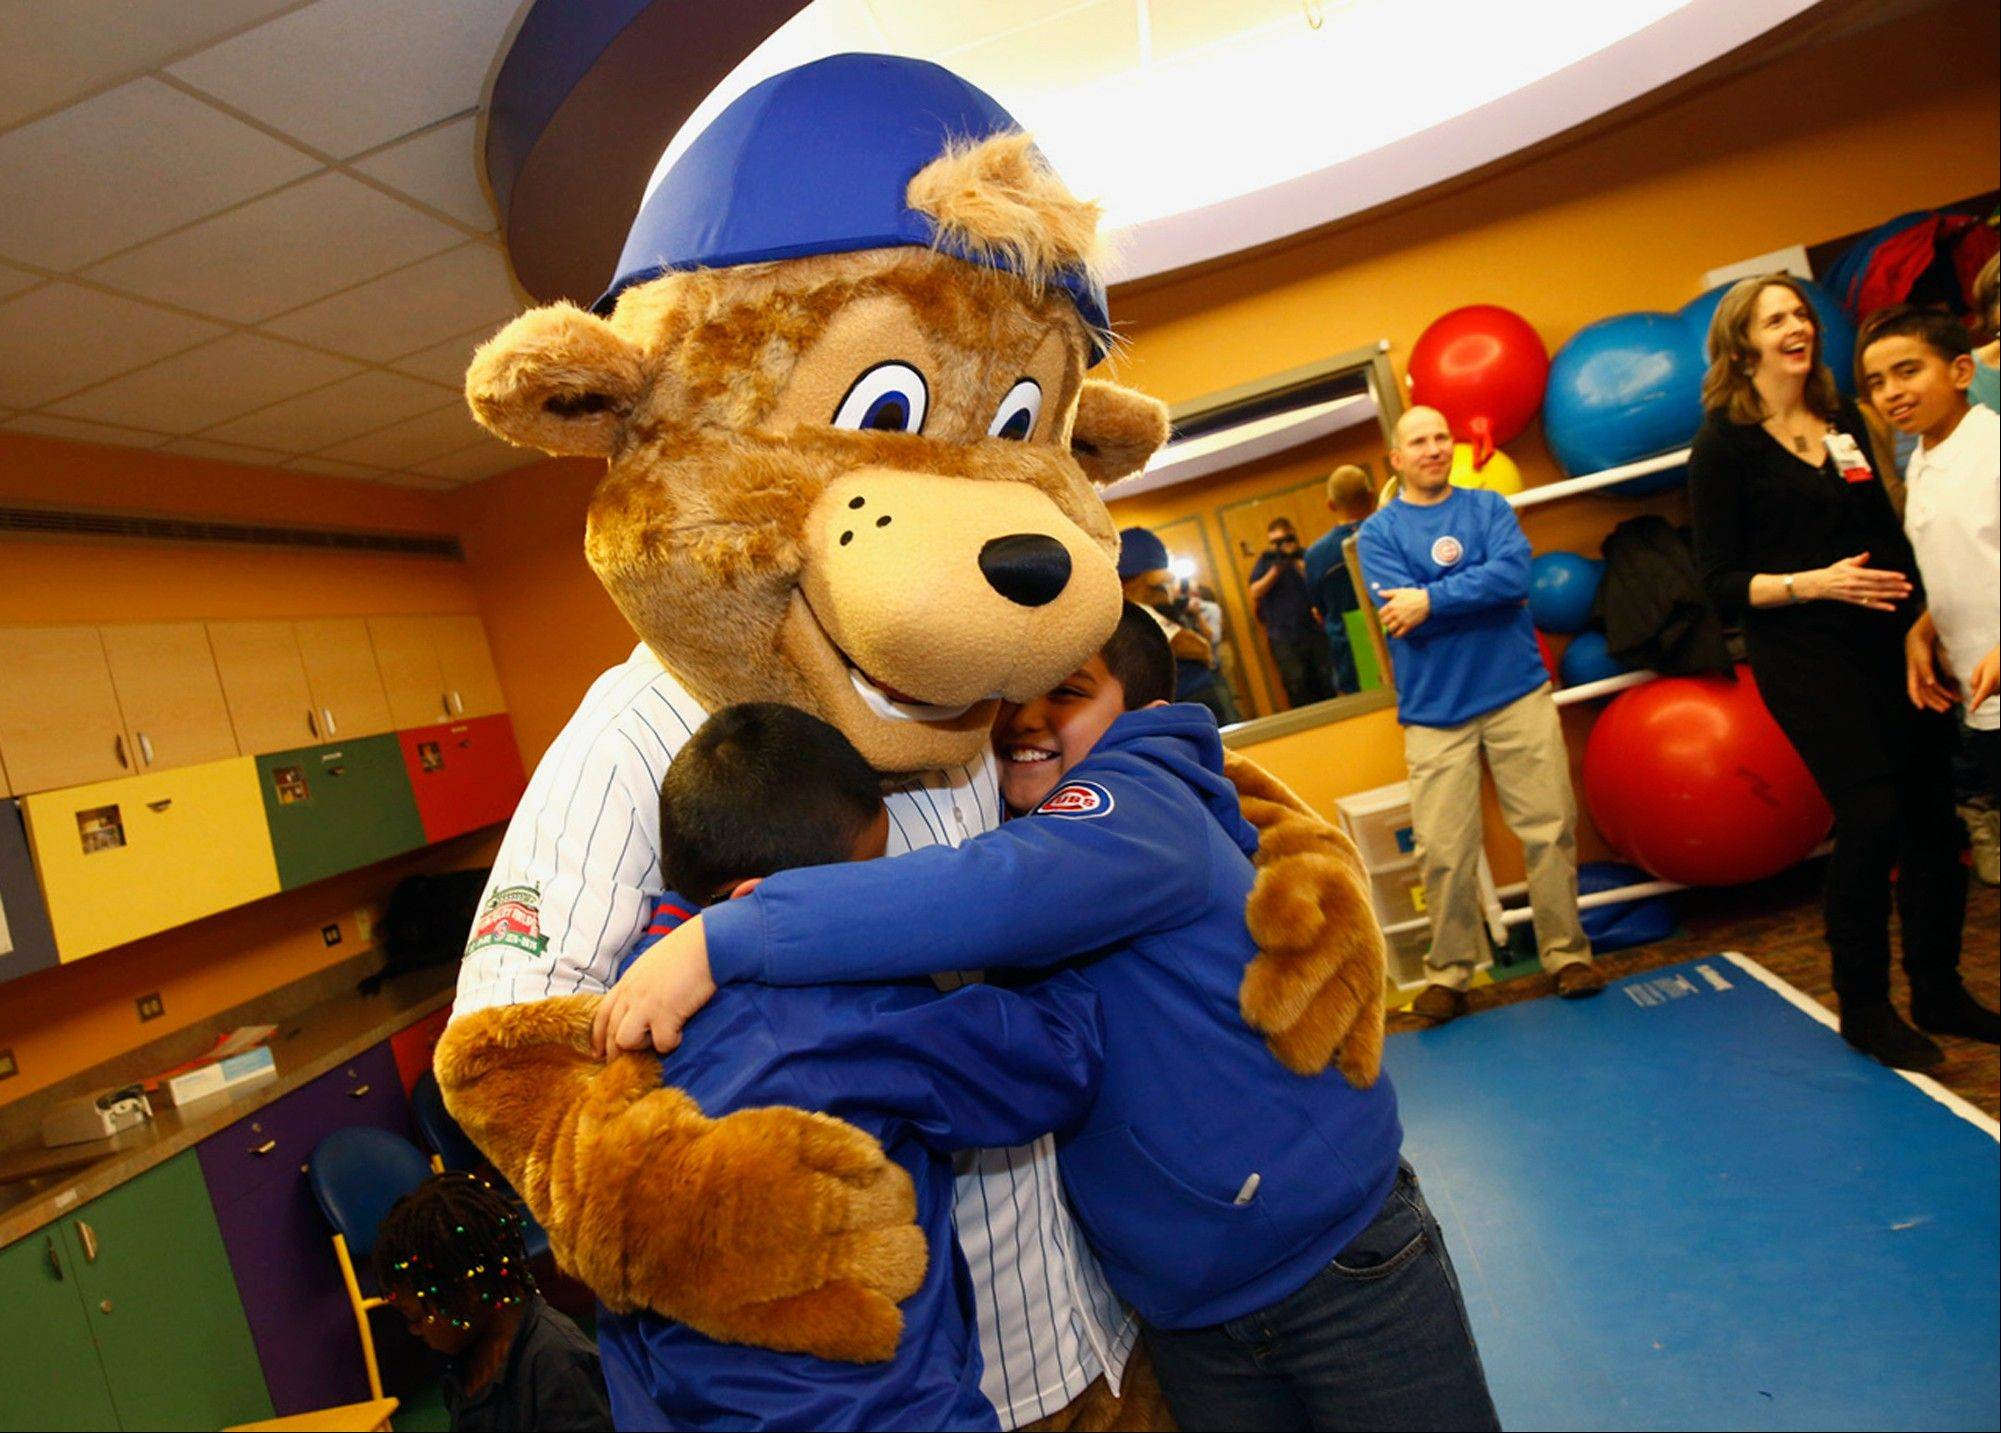 Cubs' mascot lets cynics swing for the fences